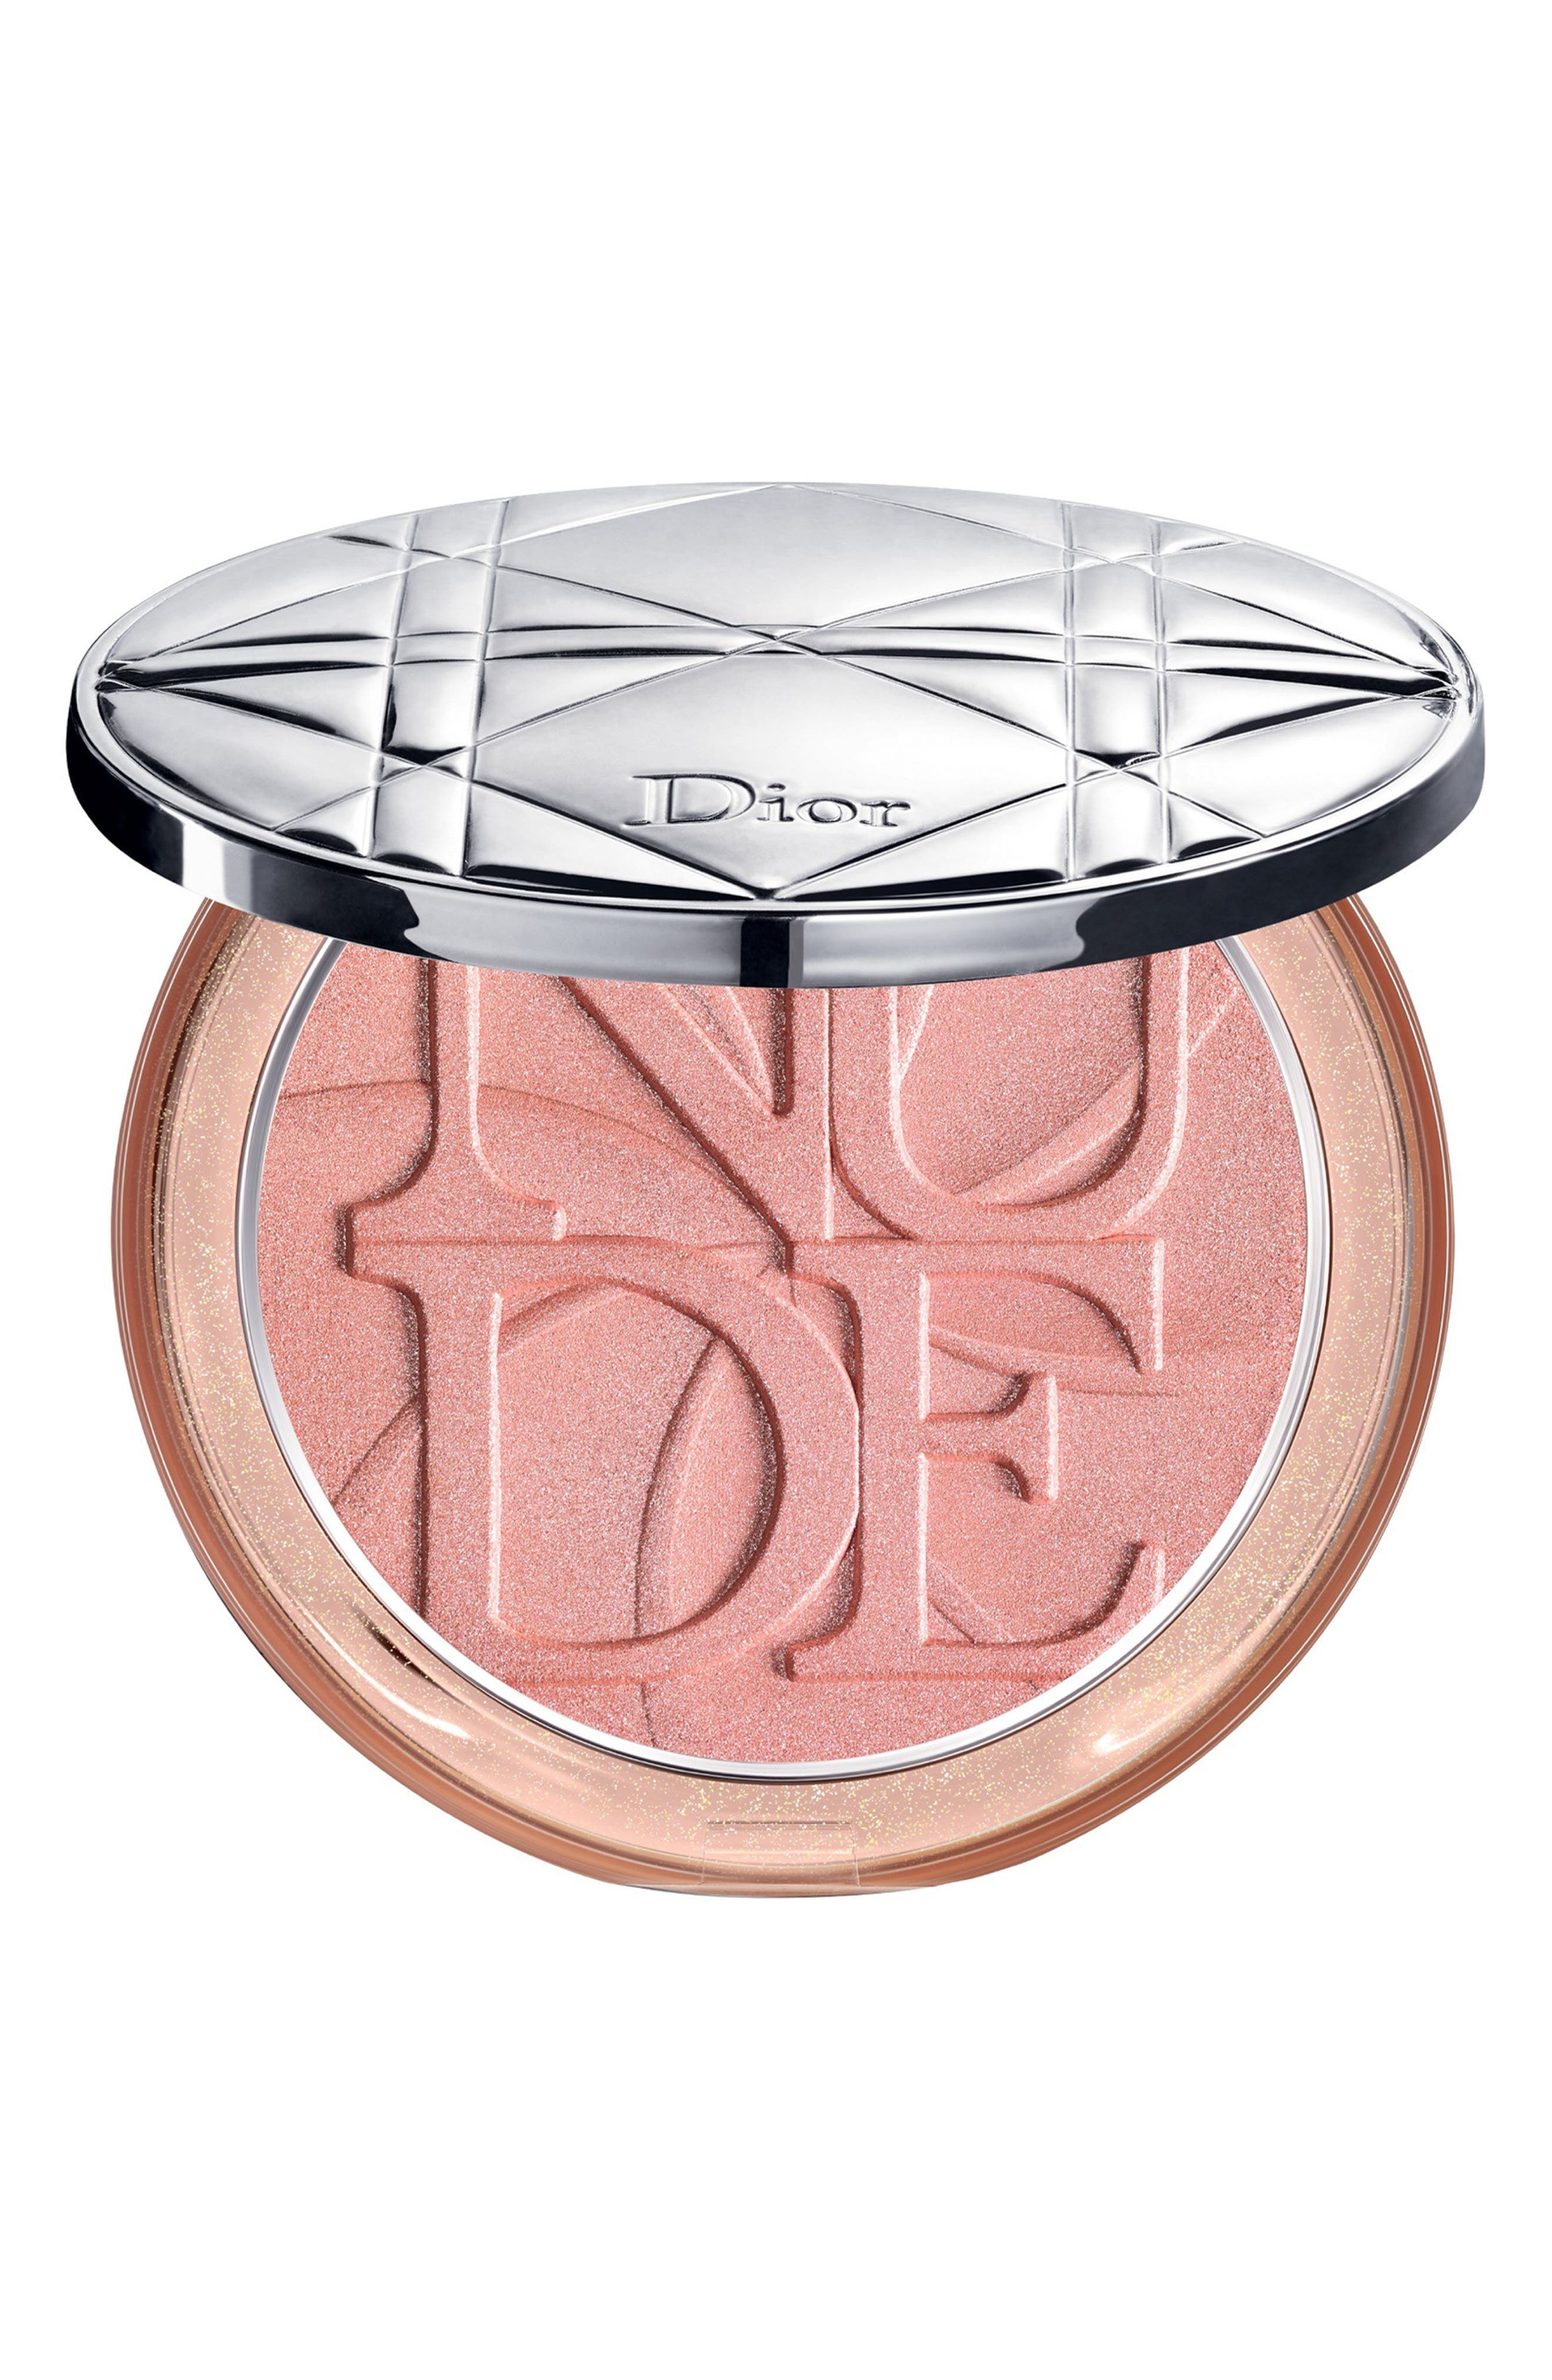 Diorskin Nude Luminizer Lolli'Glow Powder,                             Main thumbnail 1, color,                             PINK DELIGHT